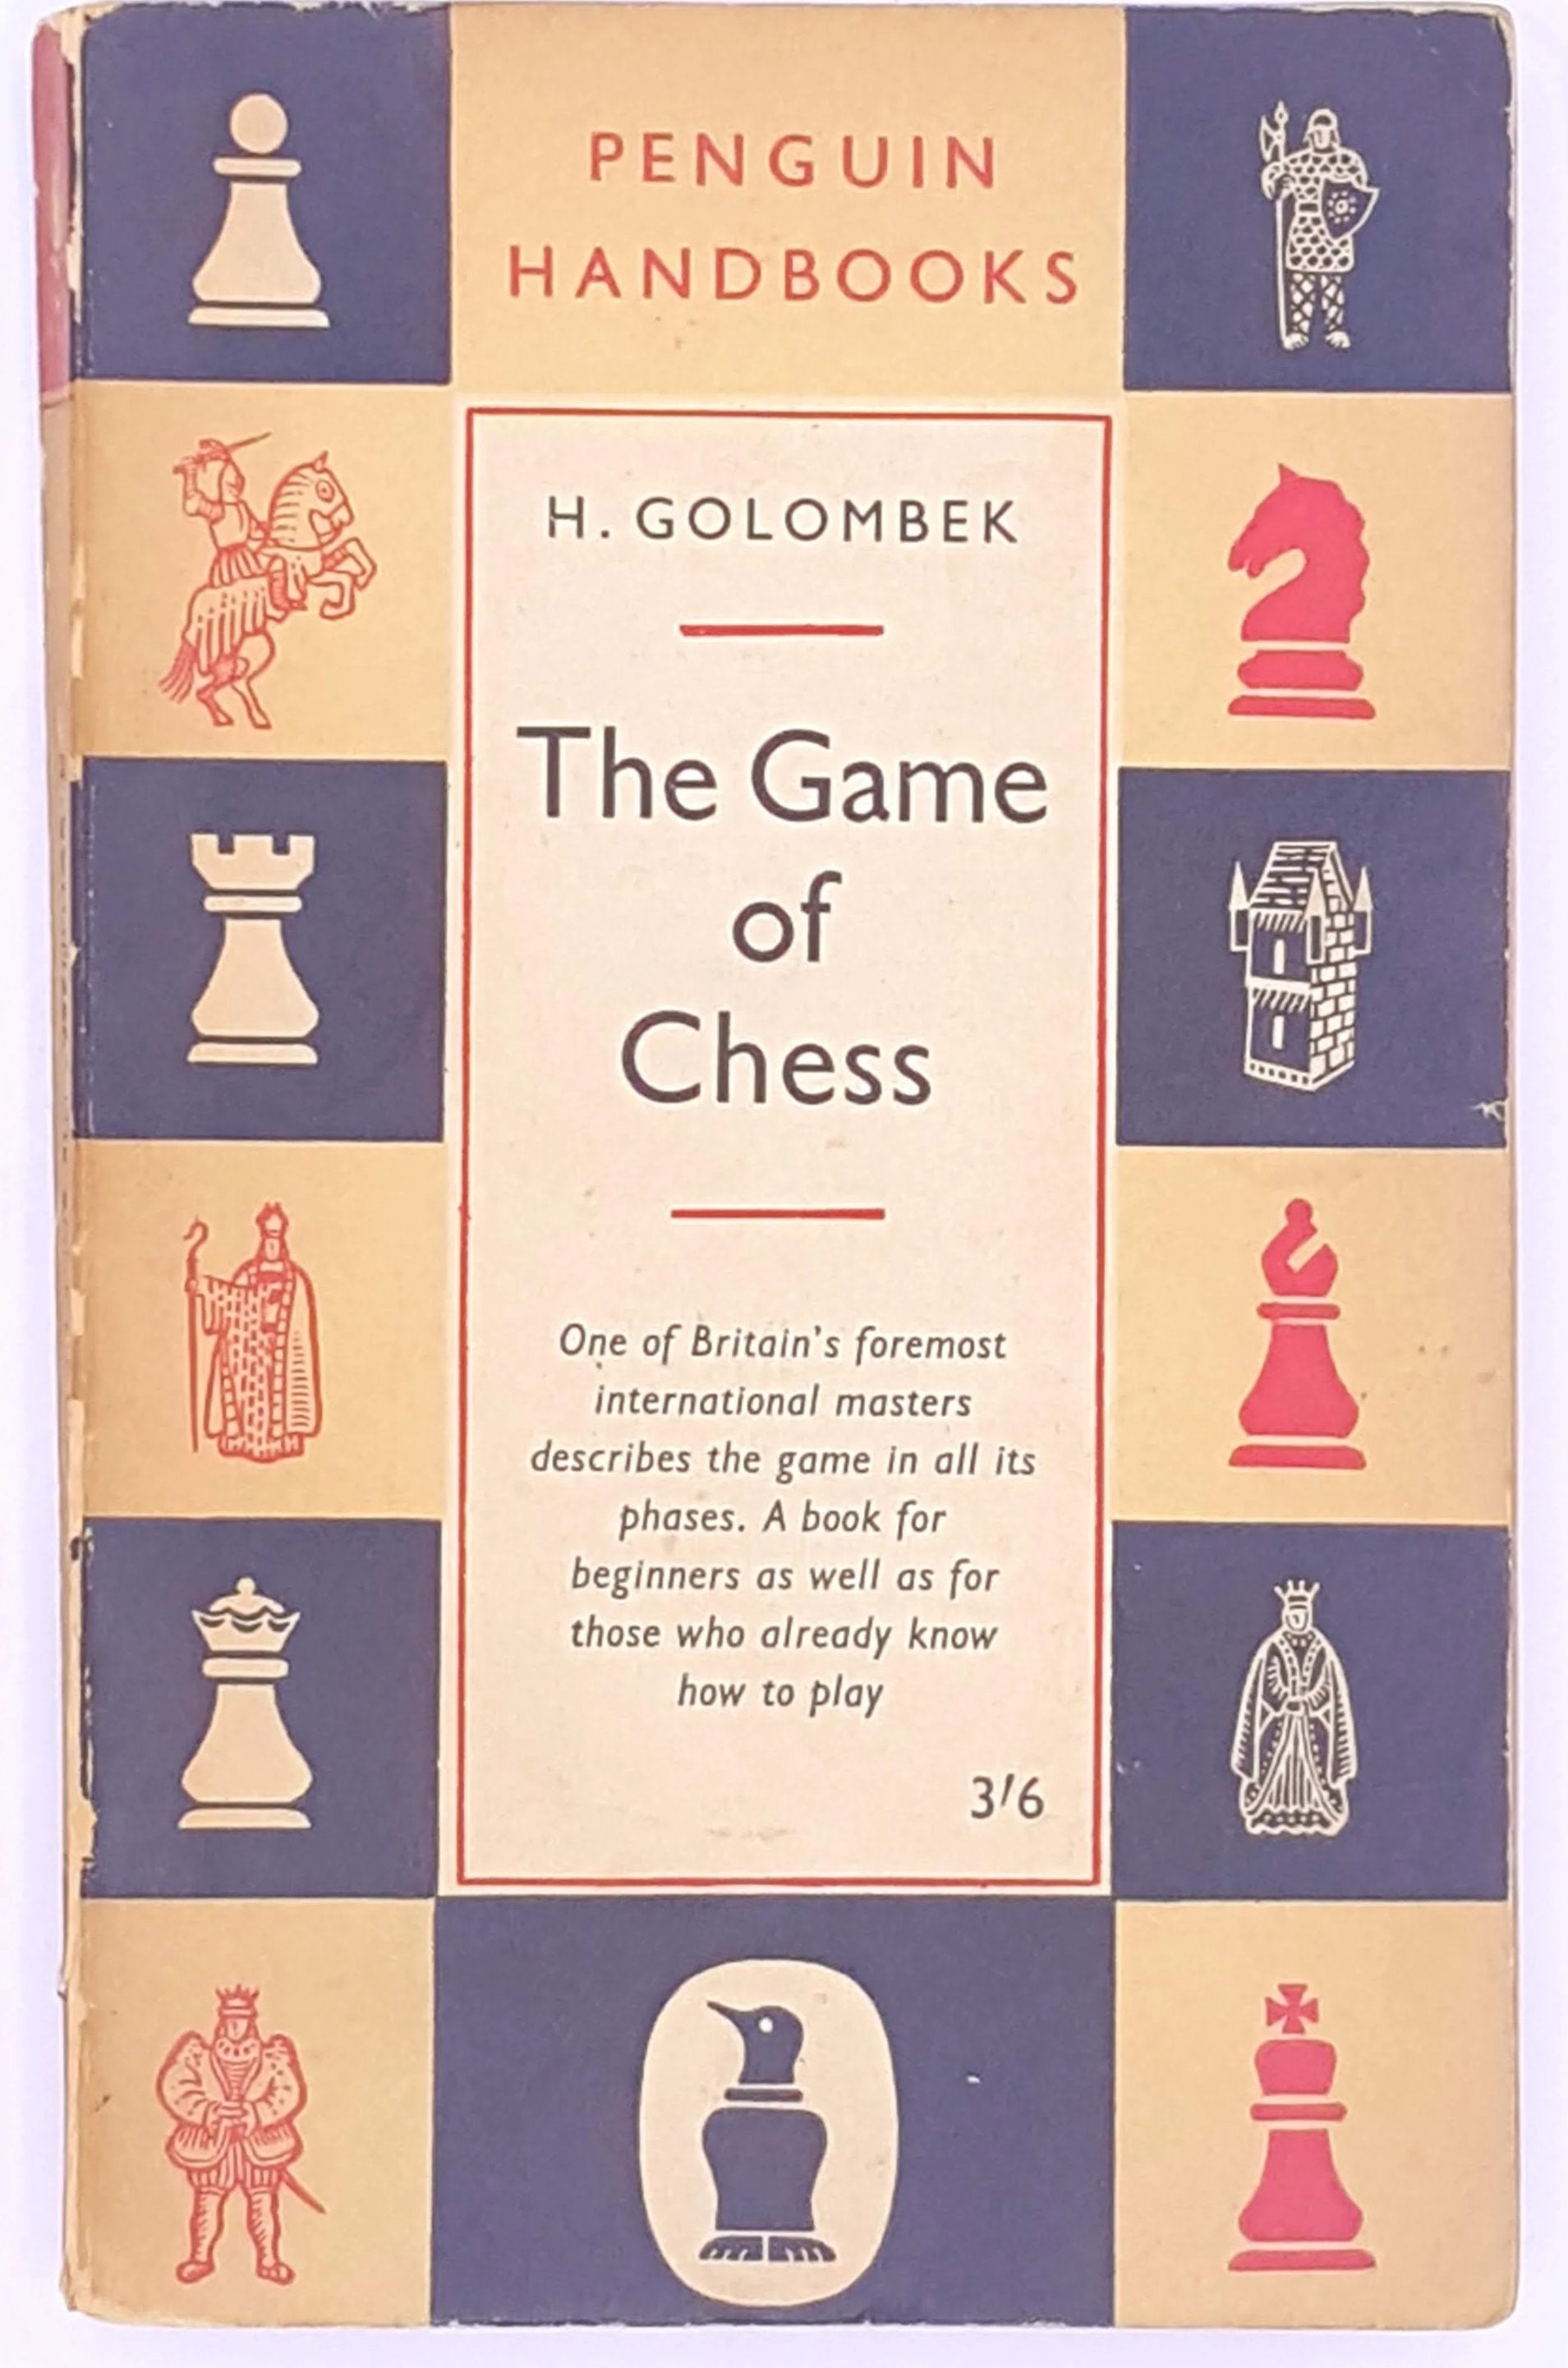 Penguin, The game of chess, H. Golombek